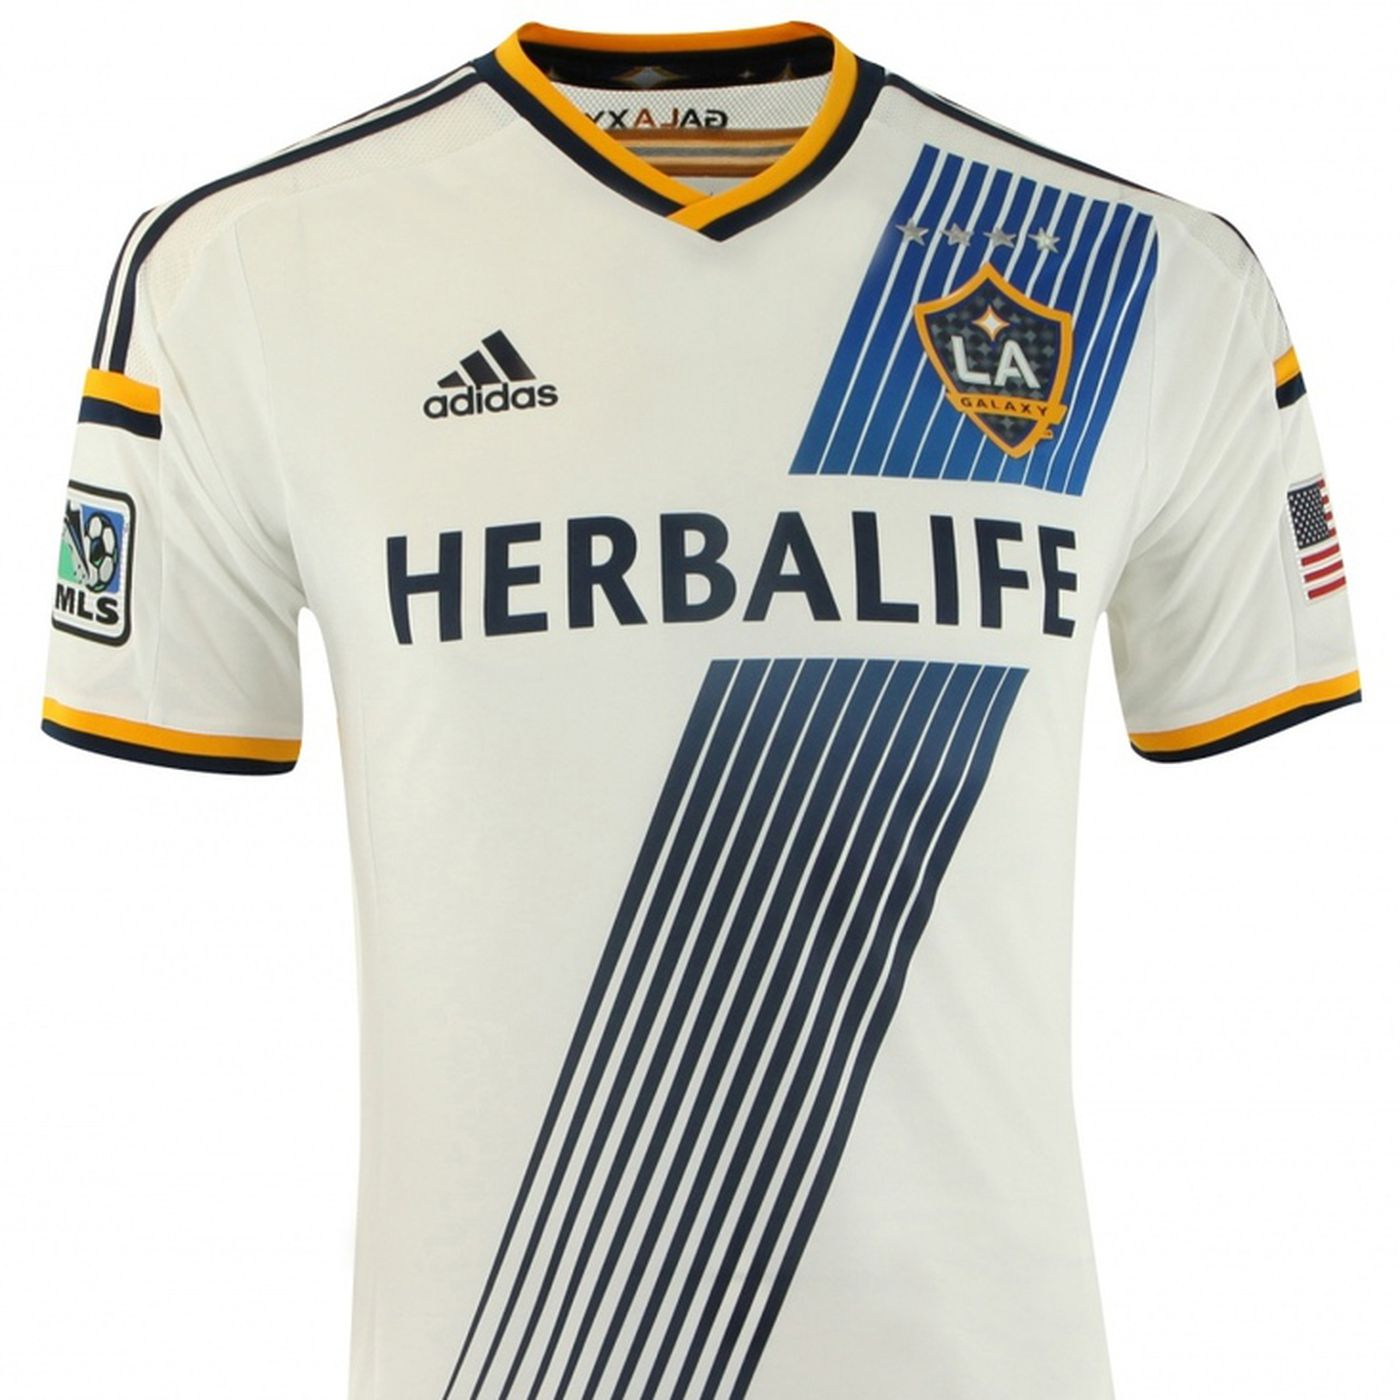 new style 36cb2 ef6f8 LA Galaxy 2014 home kit leaked, again - LAG Confidential